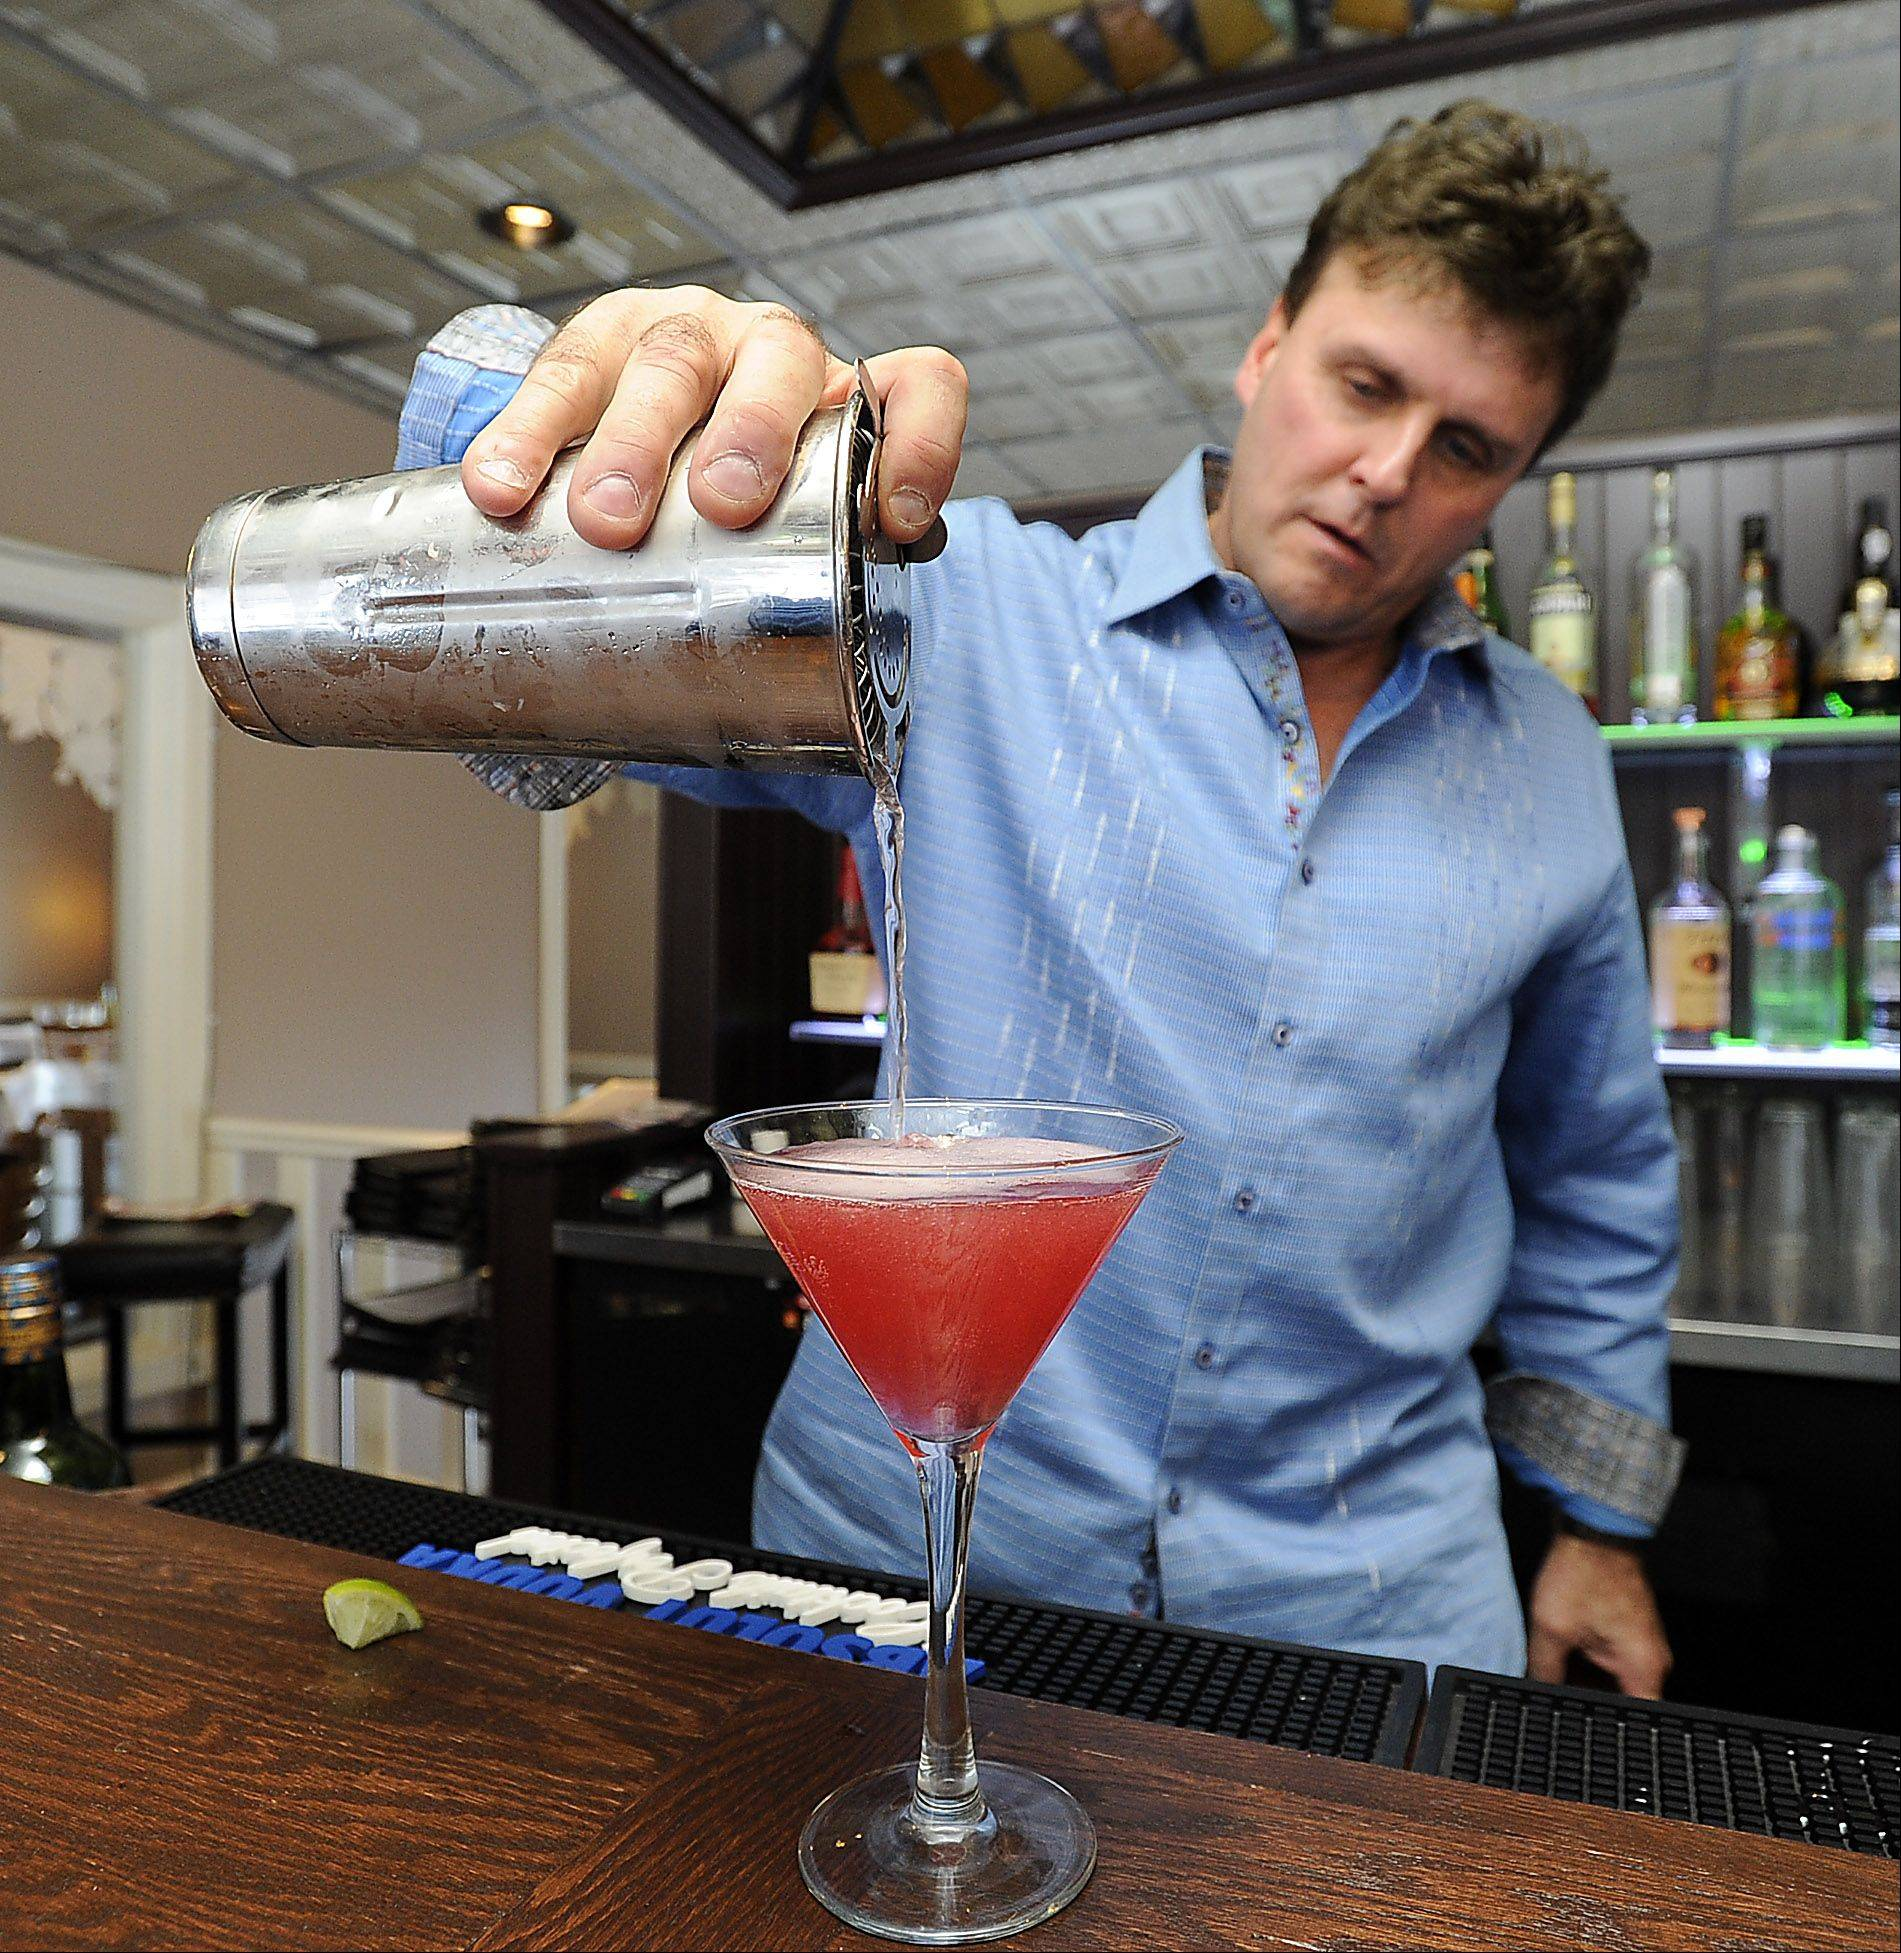 Owner Glenn Cardelli mixes a drink in the newly remodeled Enzo & Lucia Ristorante and Cafe in Long Grove.